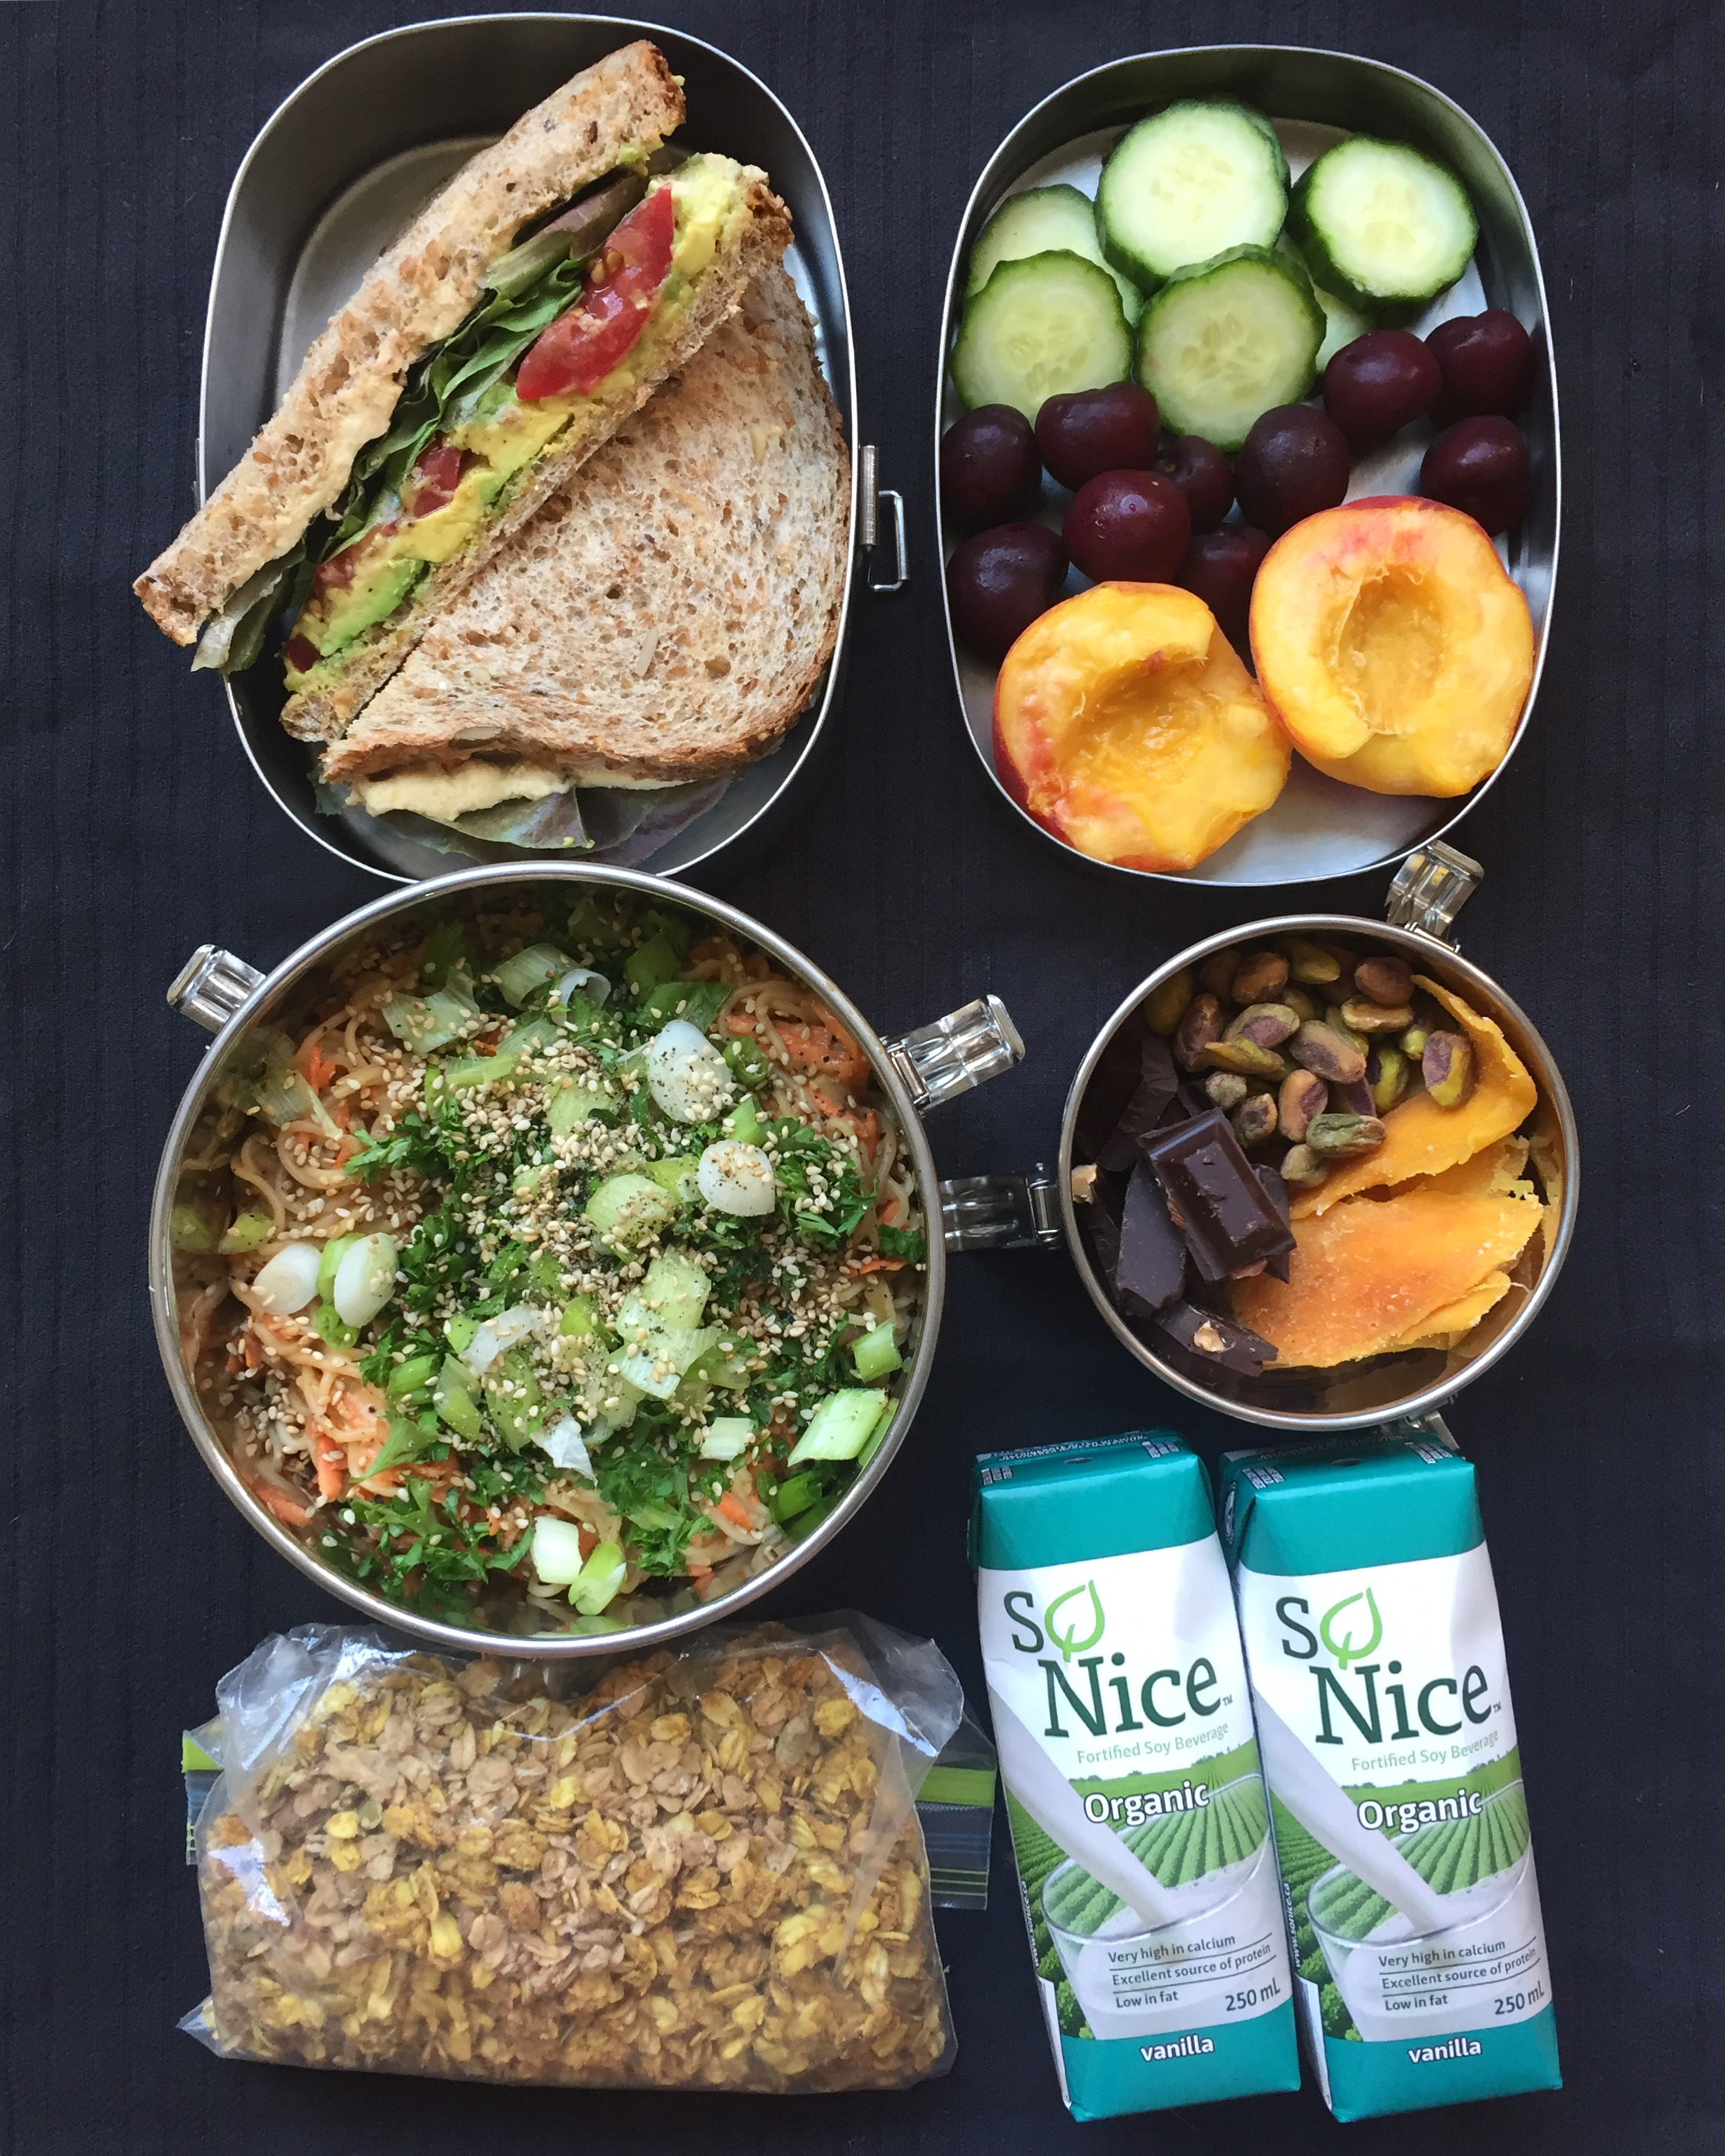 Overnight backcountry food for just me, sans stove: hummus sandwich; cukes, cherries and peach (it was August!), peanut noodles; pistachios, dried mango, dark chocolate; granola with anti-inflammatory turmeric added; tetra pack soy milk